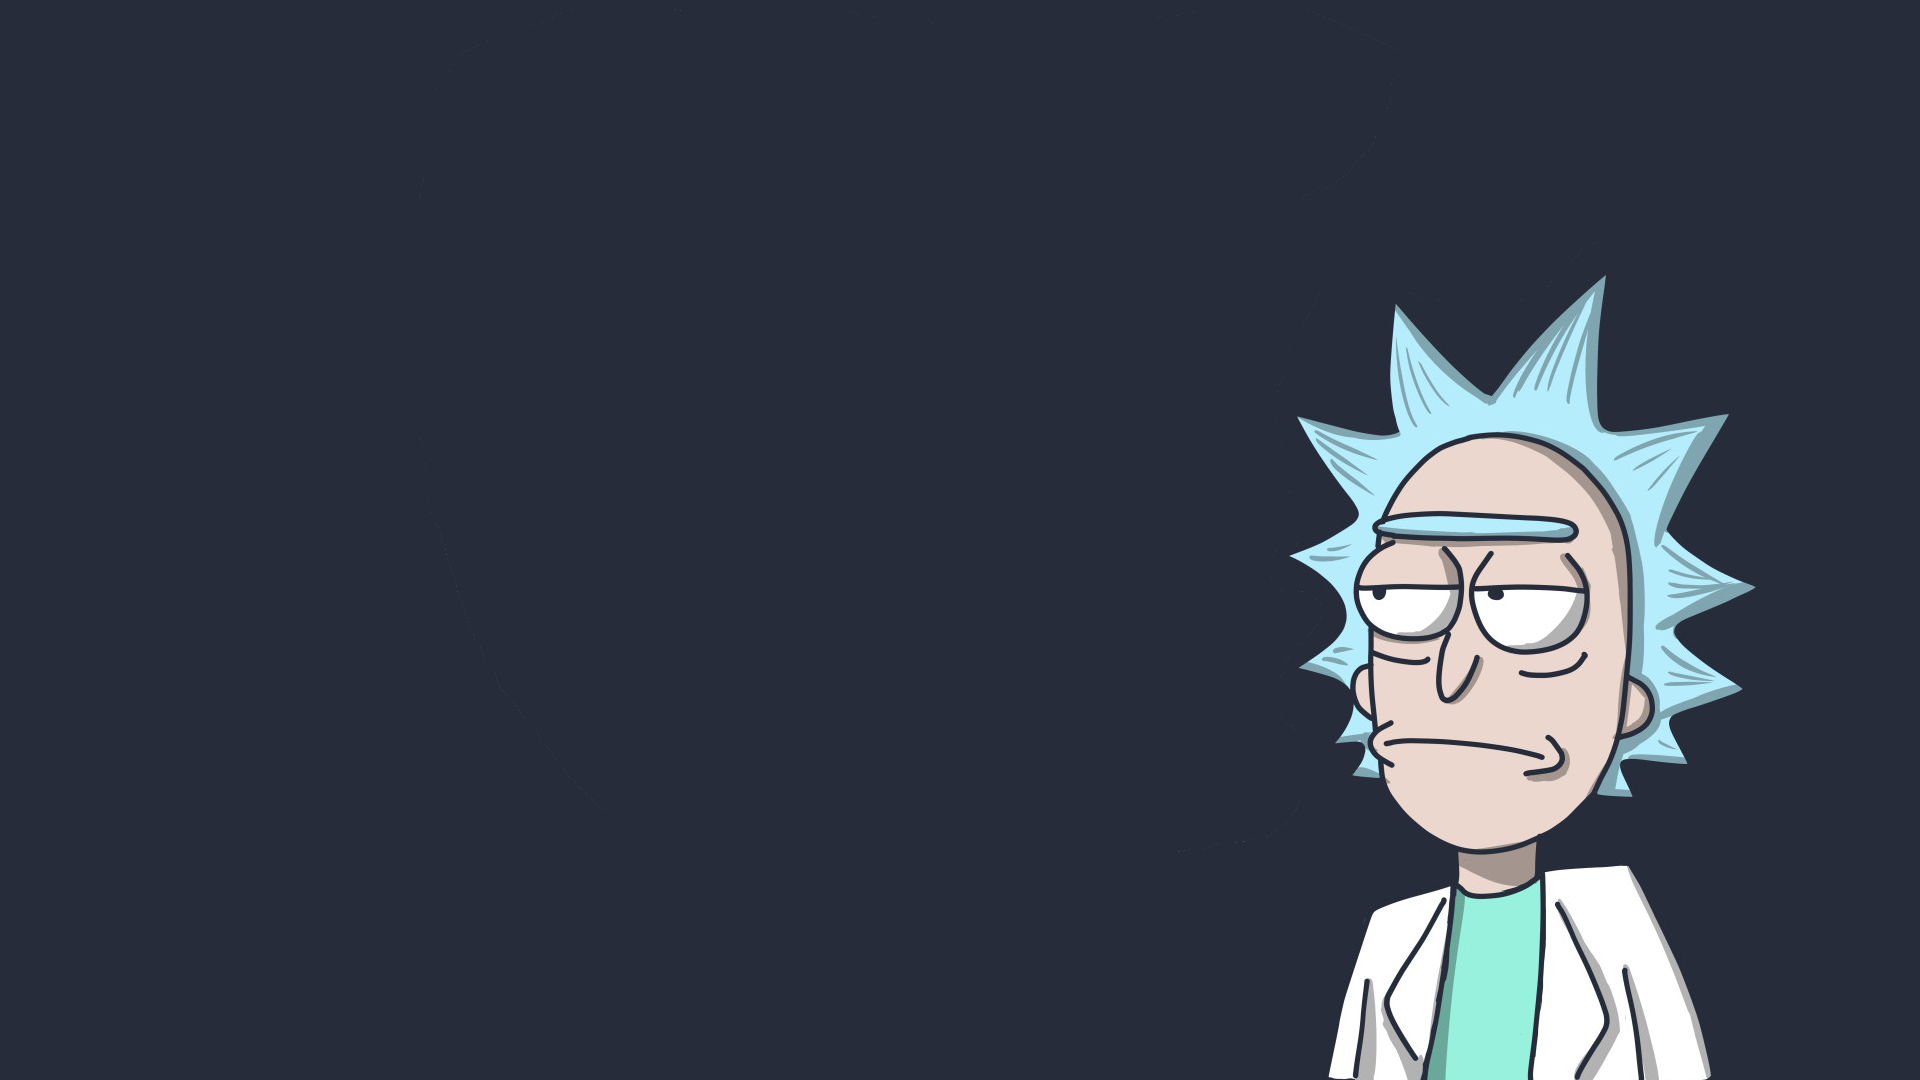 100+] Rick And Morty Wallpapers on